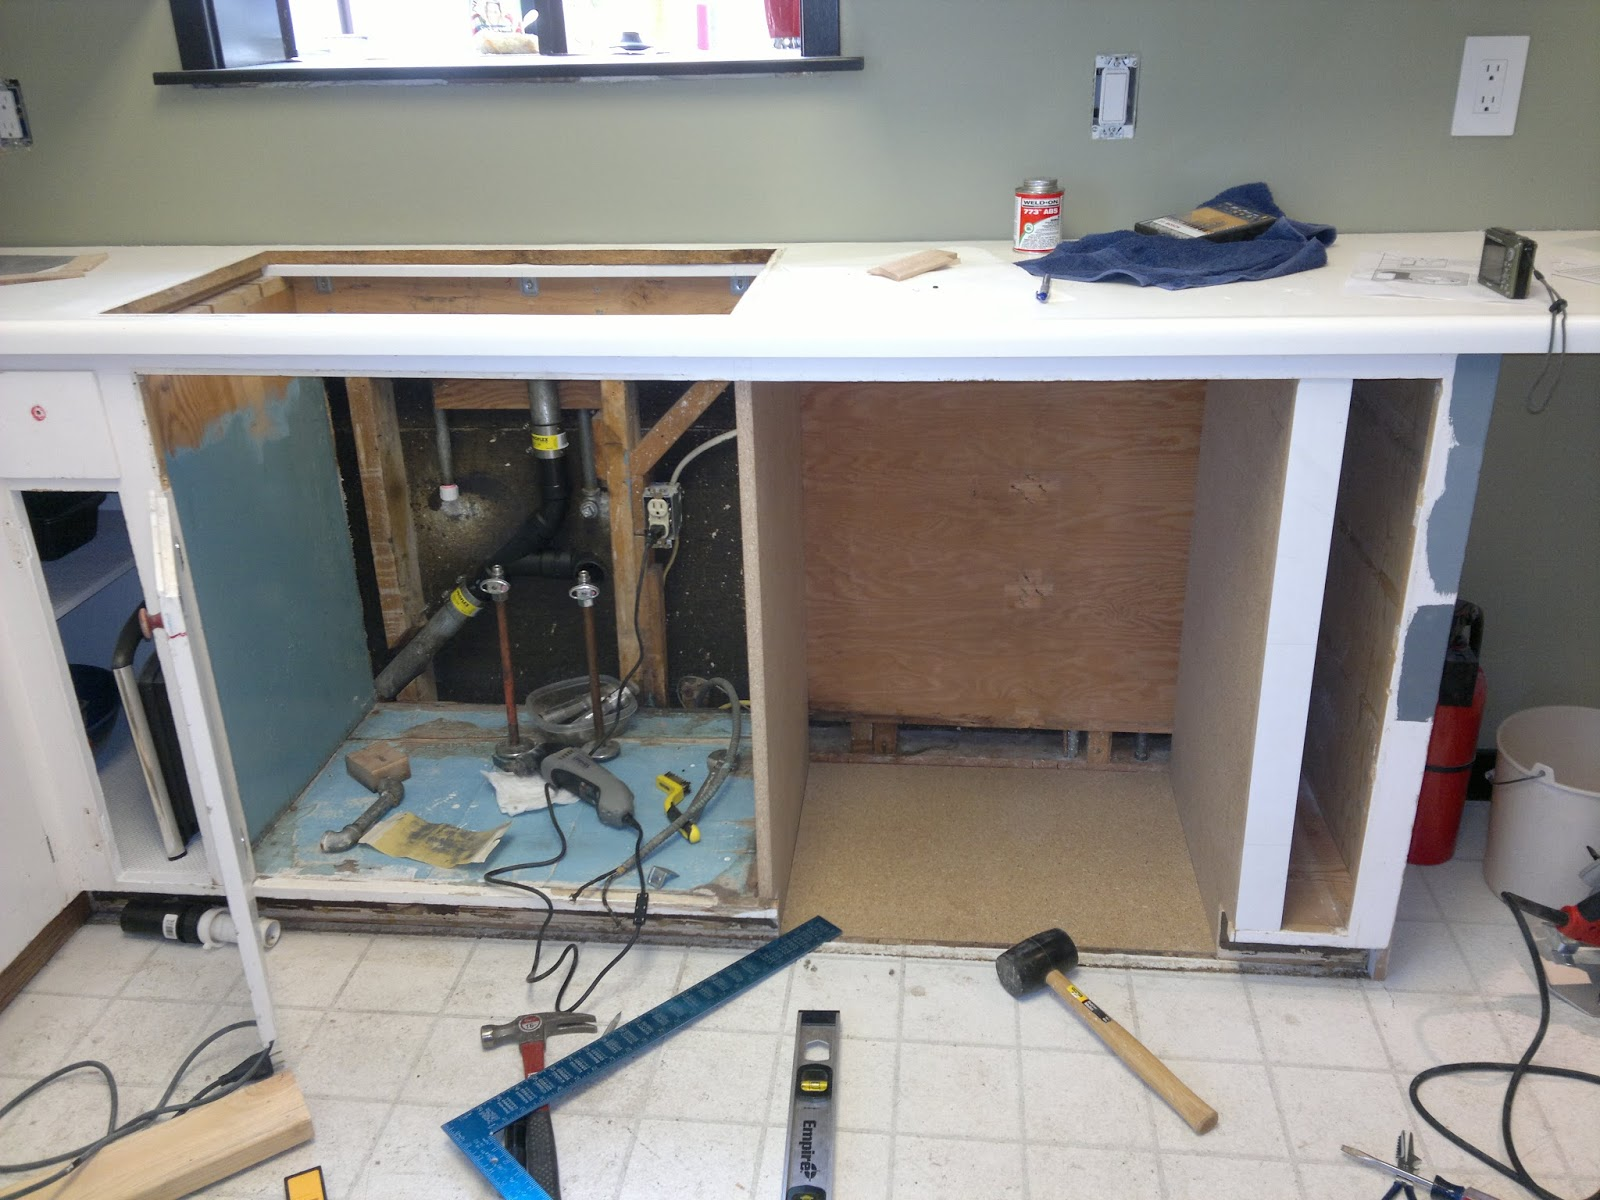 install a dishwasher in an existing kitchen cabinet | www ...